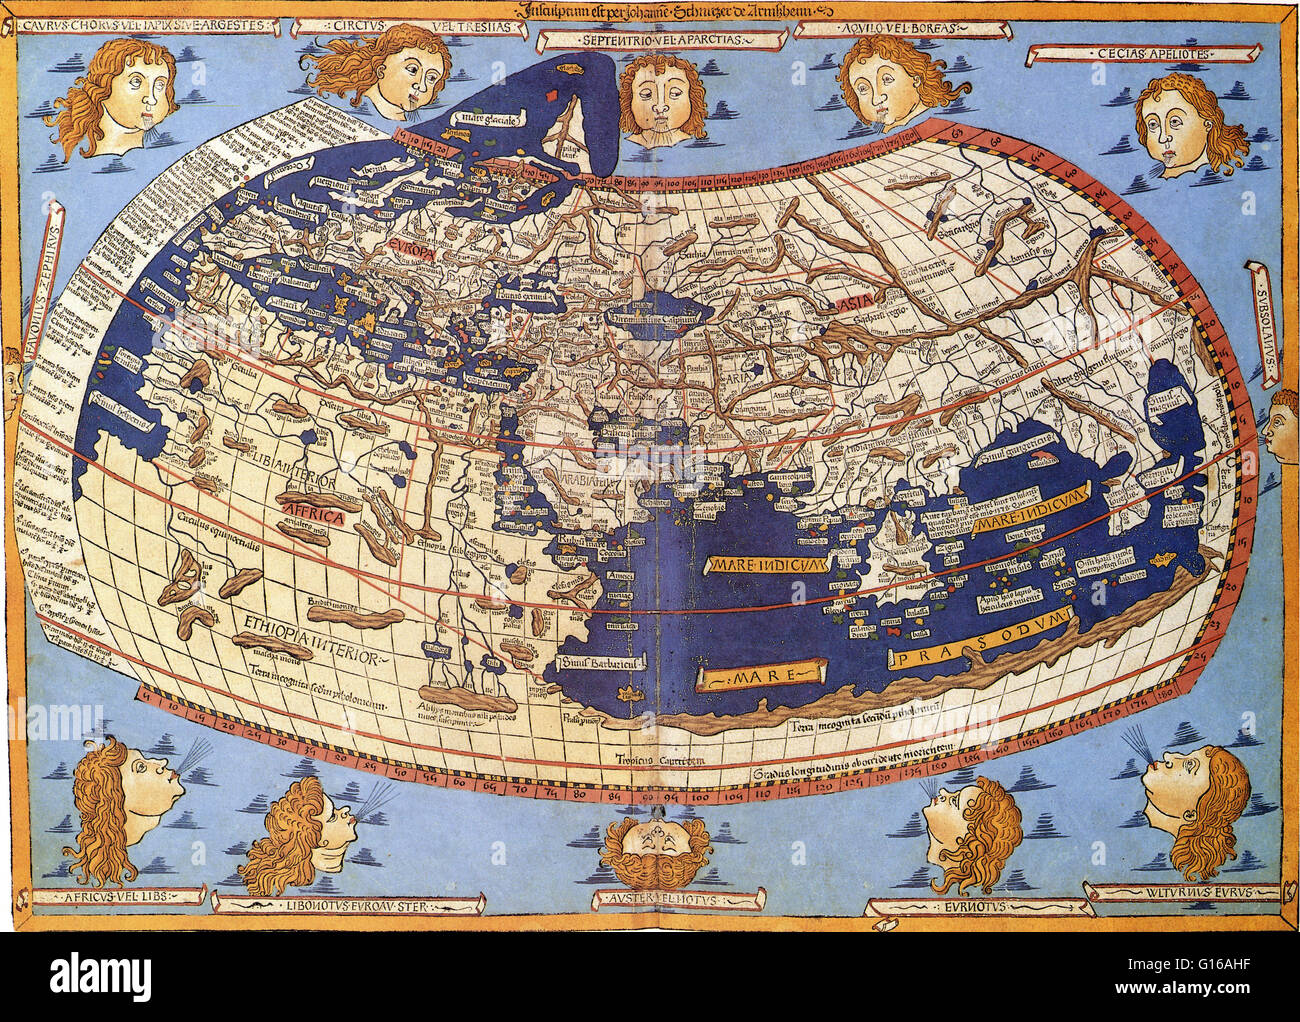 Ptolemy world map taken from the first printed edition of 1472 ptolemy world map taken from the first printed edition of 1472 the first book to have printed maps and the famous rome edition of 1508 gumiabroncs Choice Image